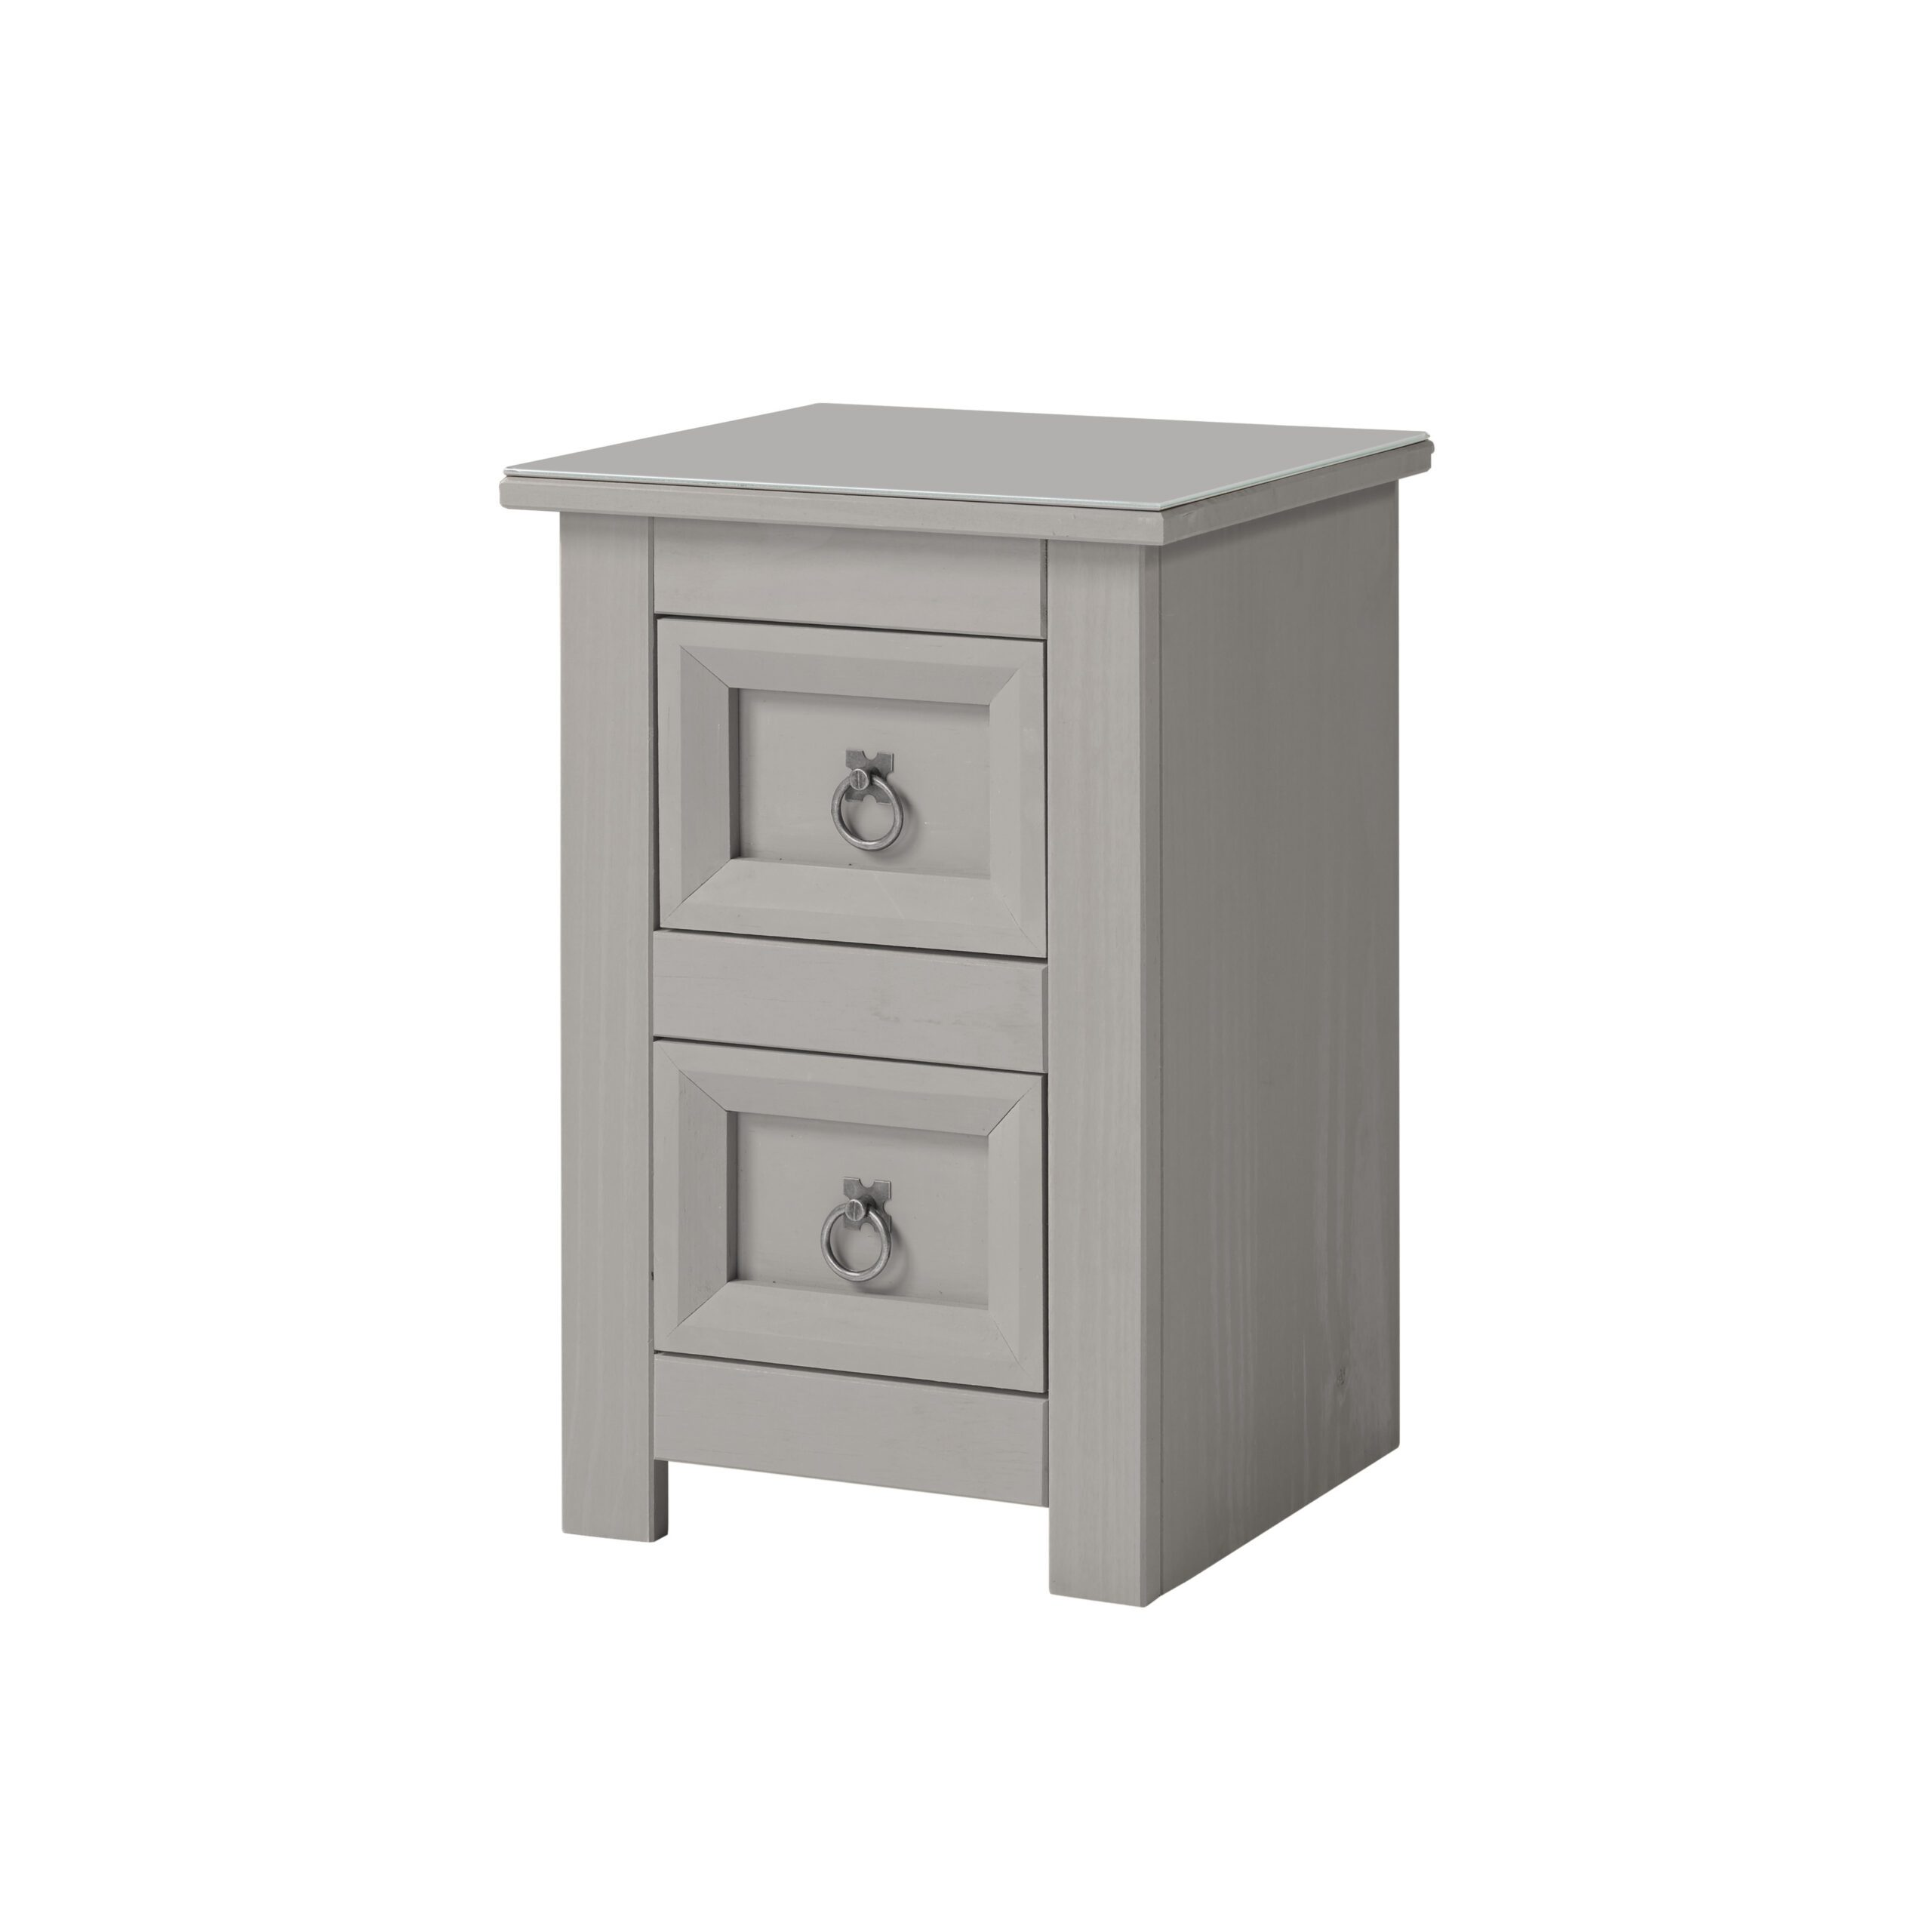 Cortini 2 drawer petite bedside cabinet with glass top